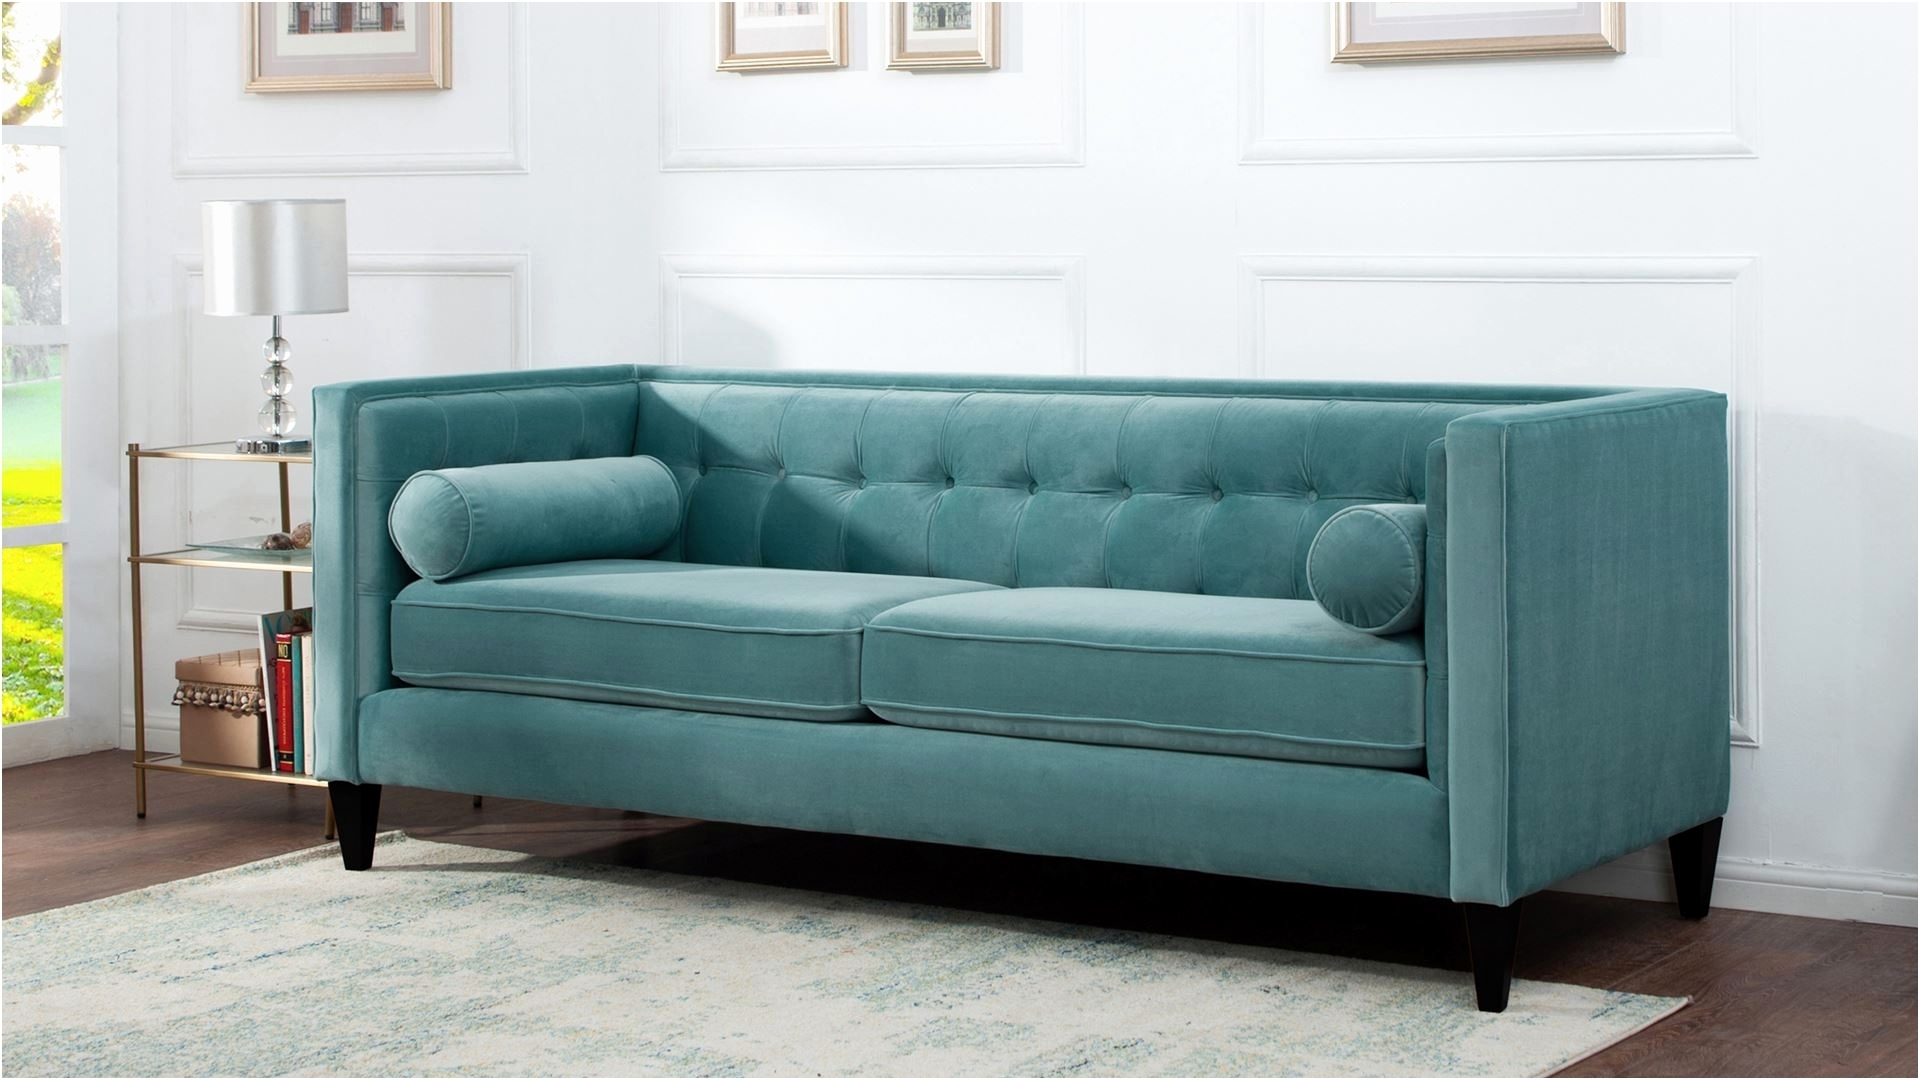 20 Best Collection Of Turquoise Sofas